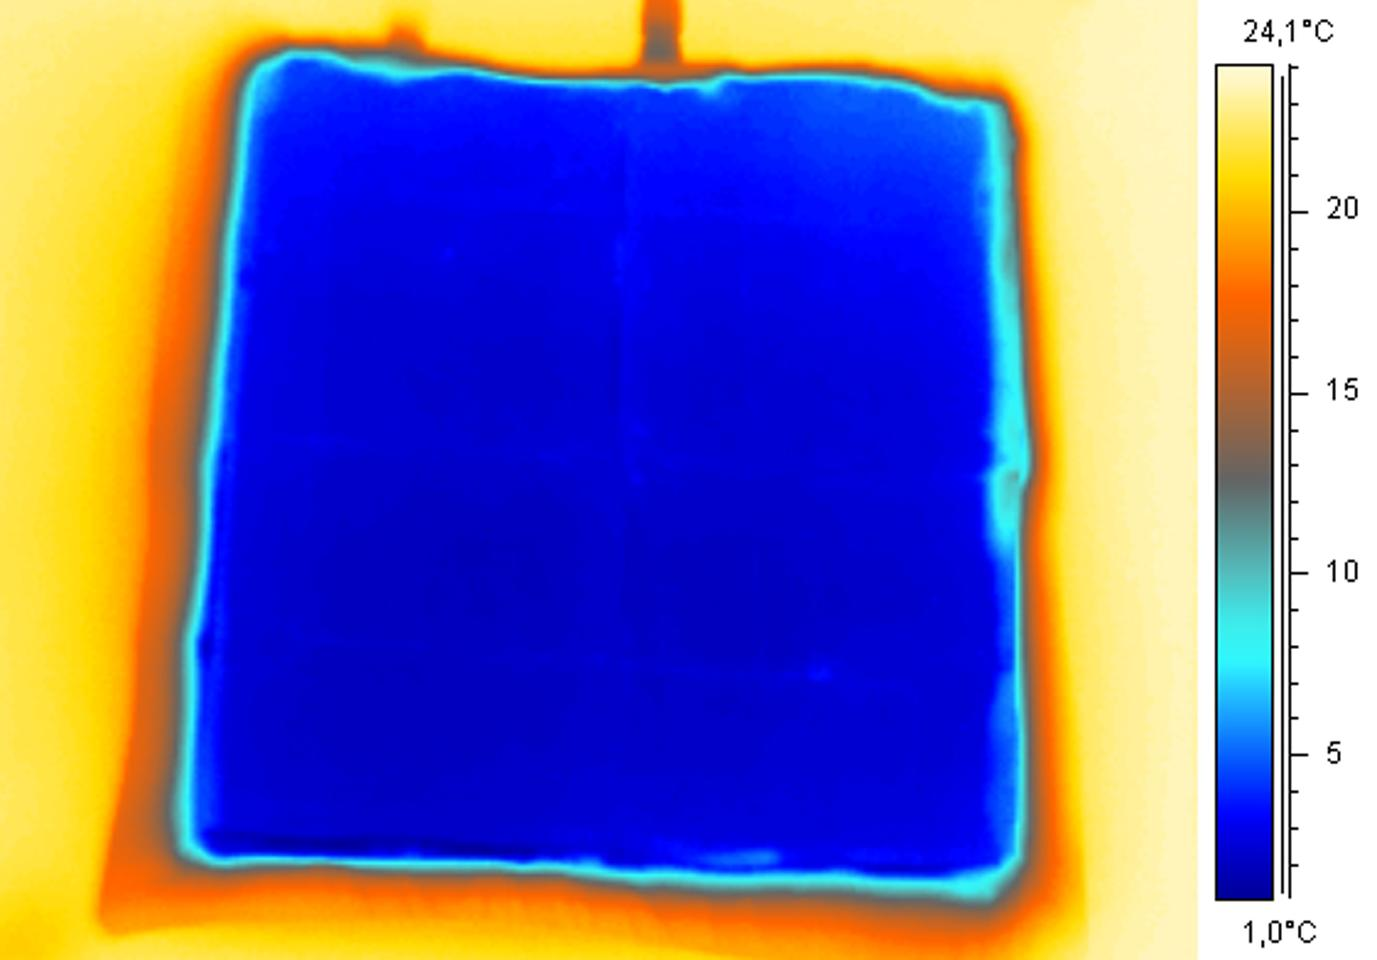 An infrared image of one of the cooling pads, illustrating how cold they get